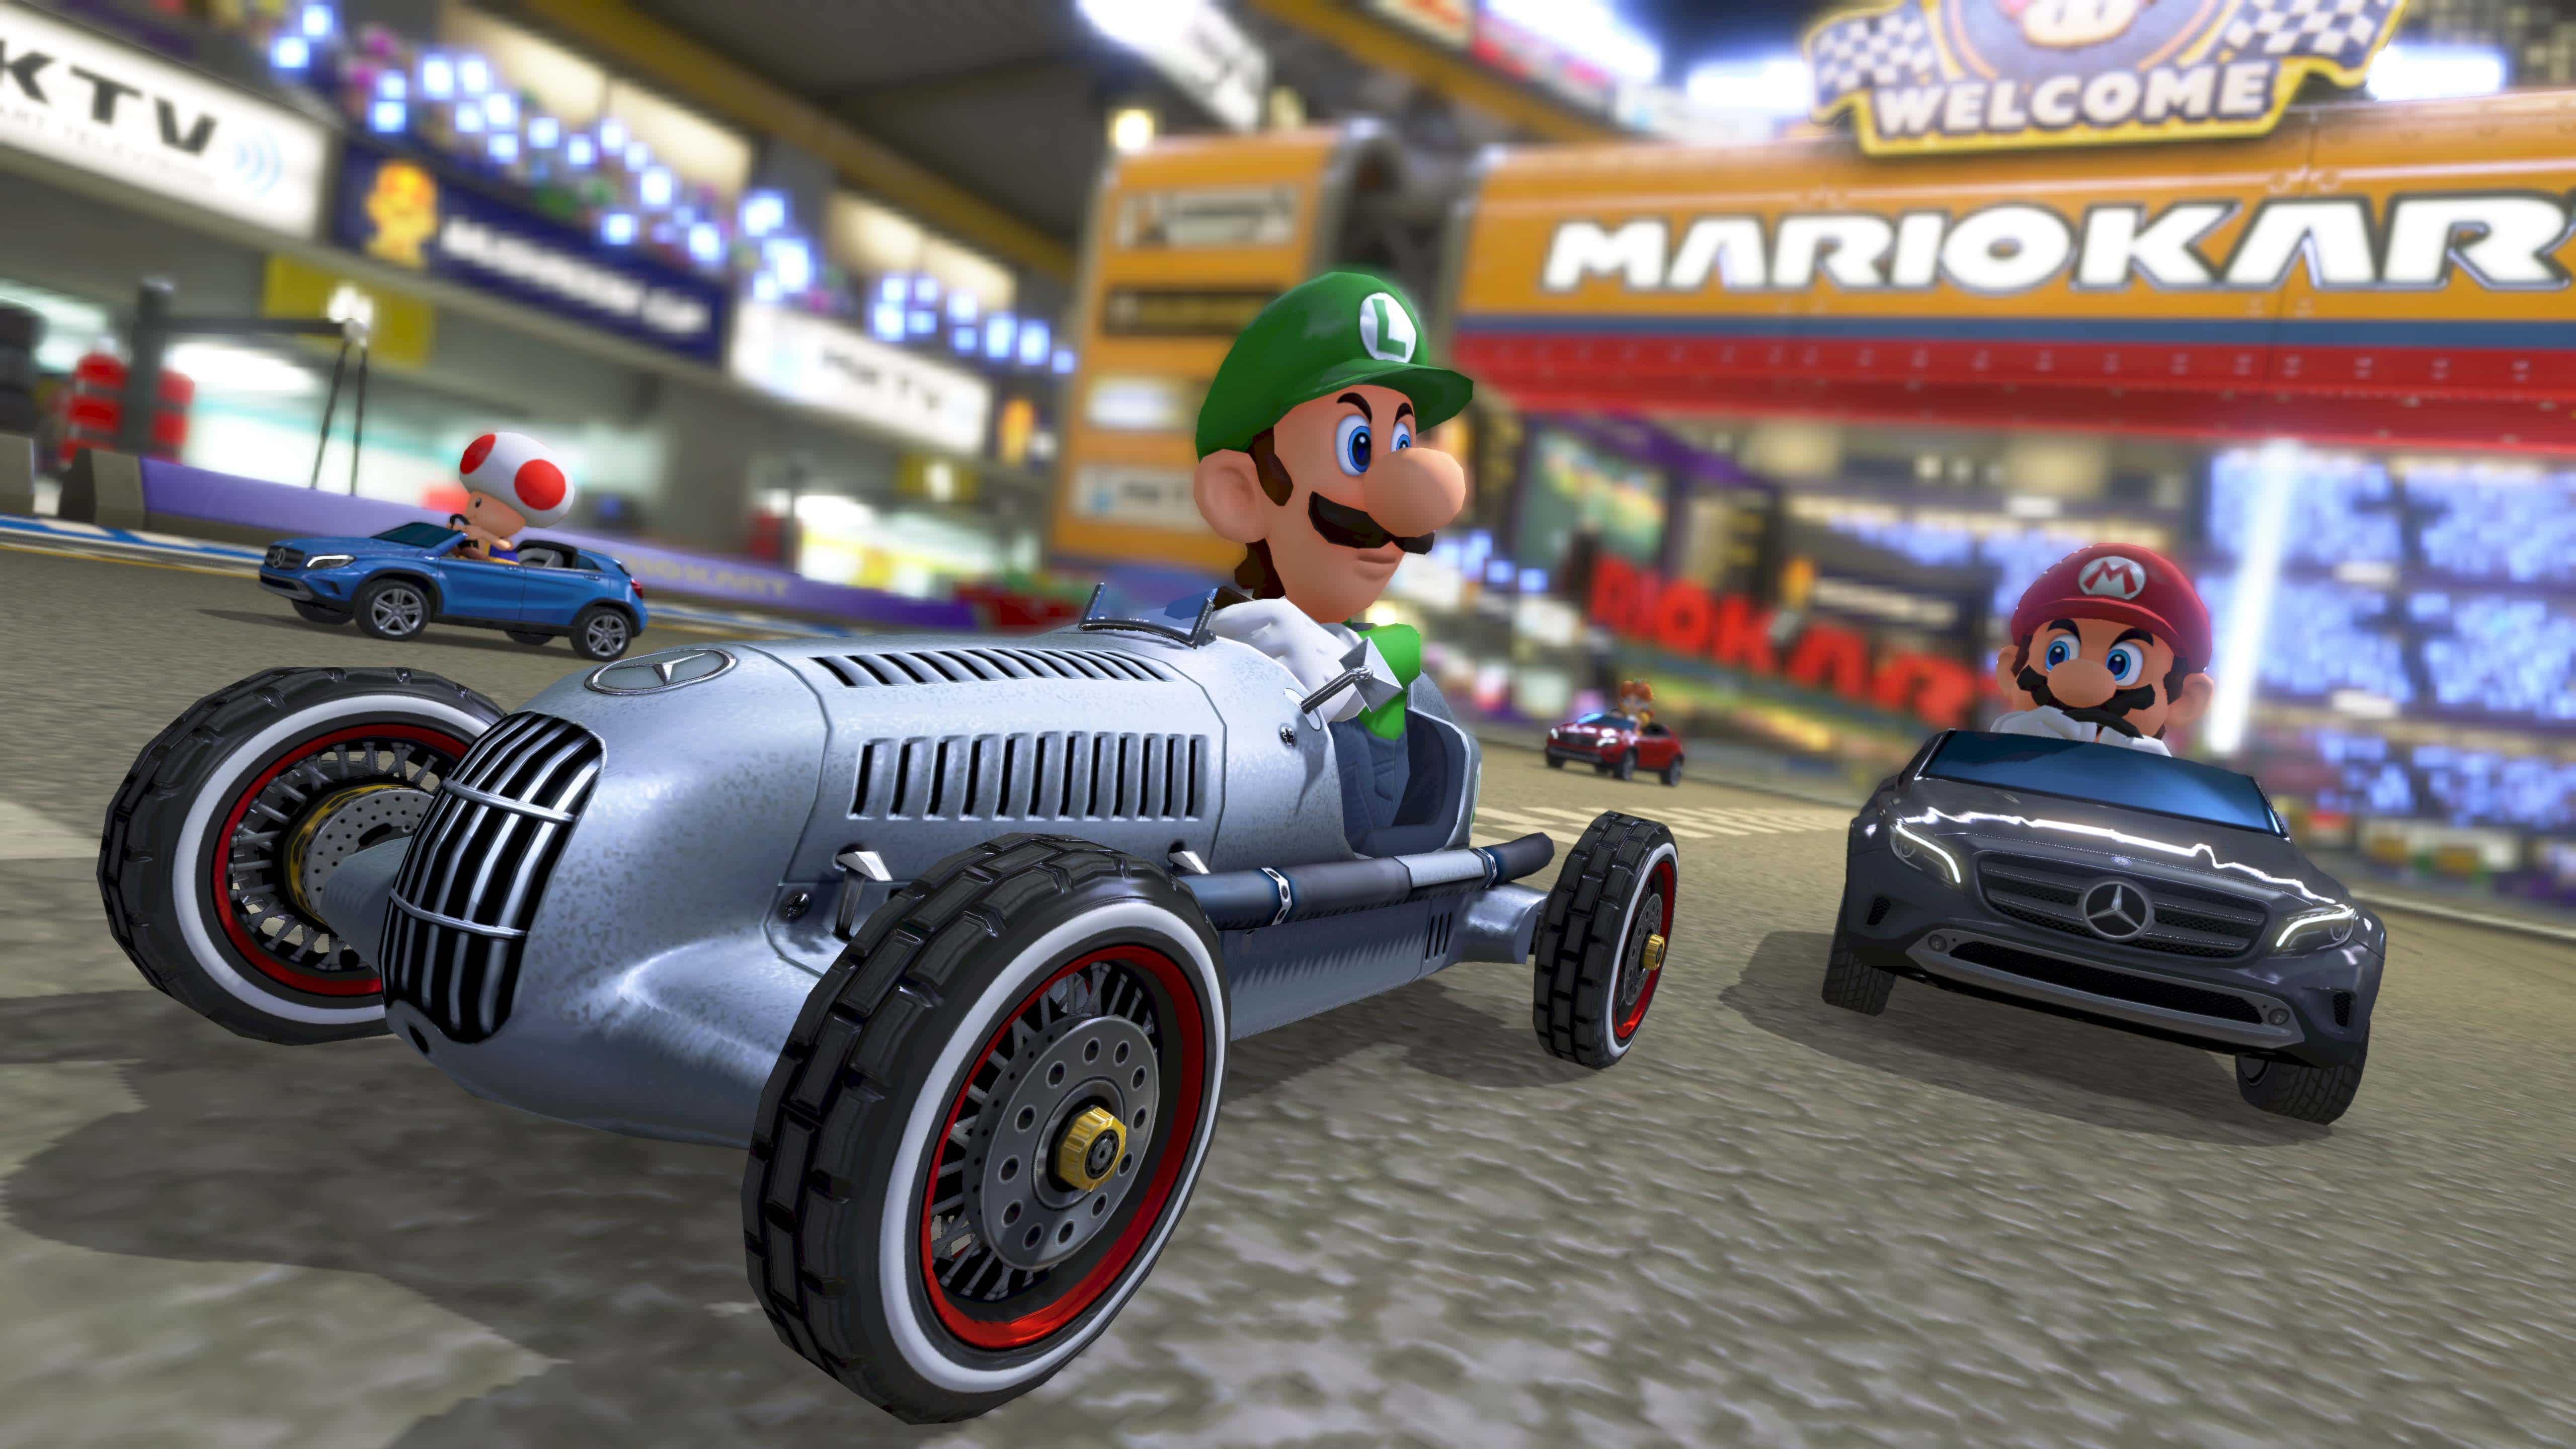 Free Update Coming to Mario Kart 8